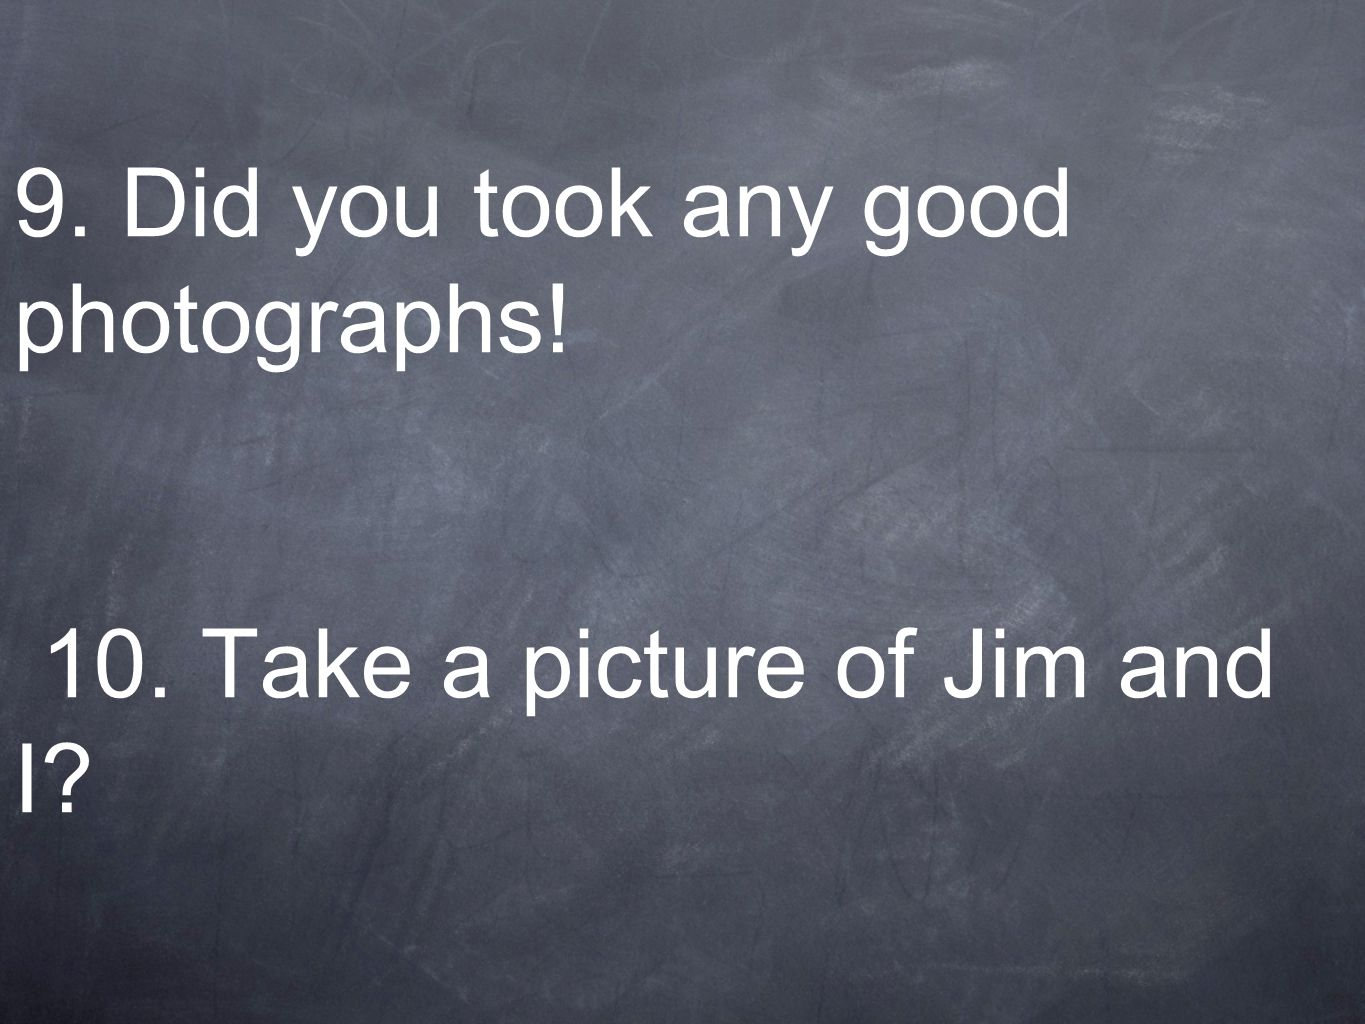 9. Did you took any good photographs! 10. Take a picture of Jim and I?